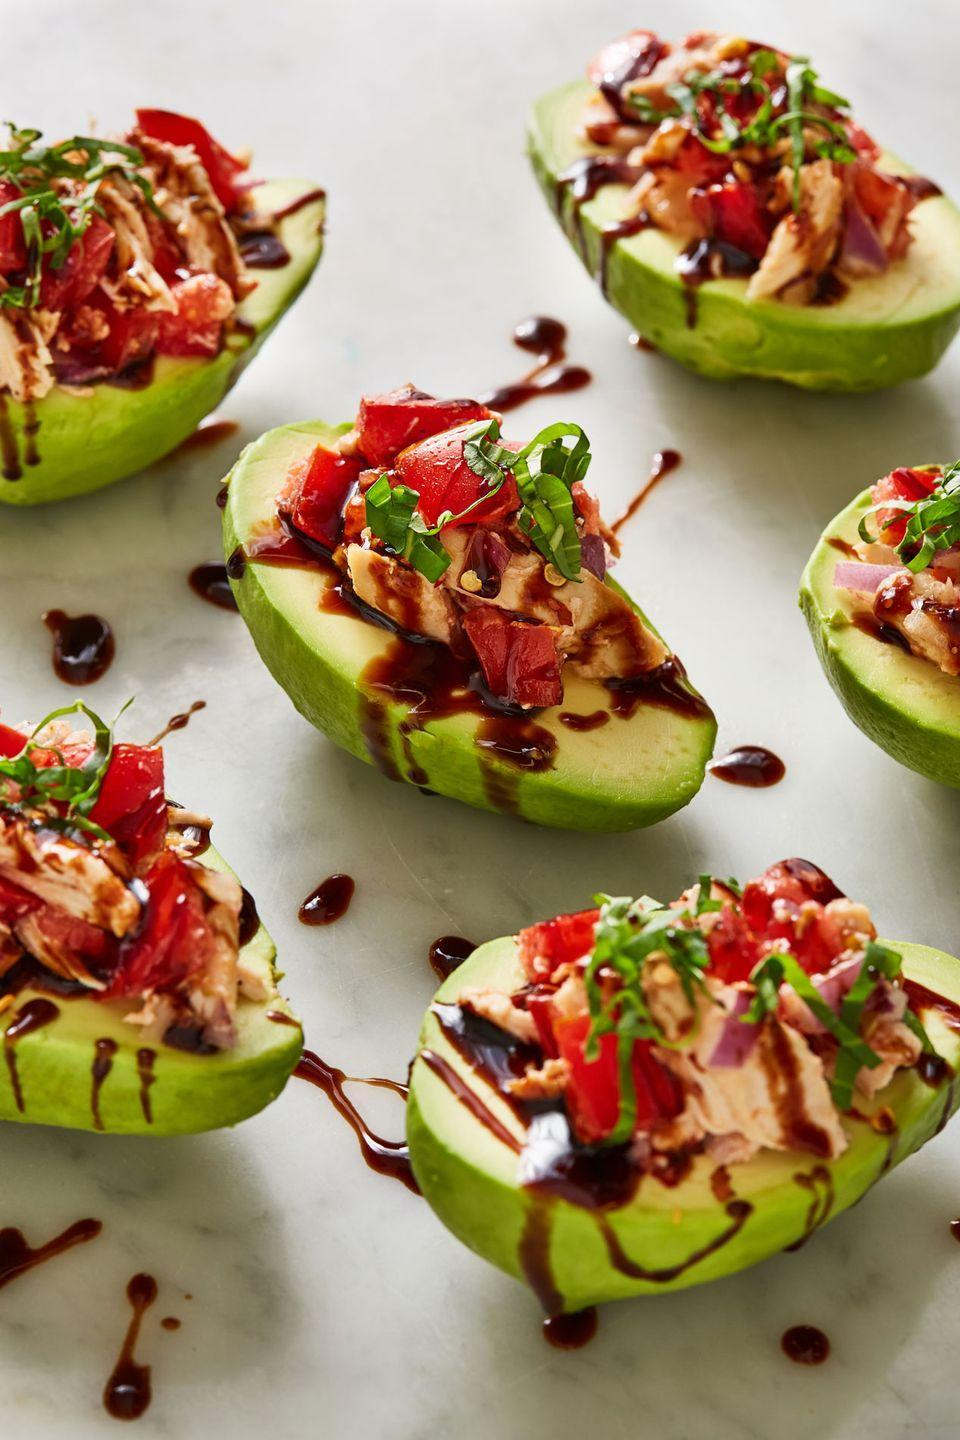 """<p>Low-carb and pretty!</p><p>Get the recipe from <a href=""""https://www.delish.com/cooking/recipe-ideas/a22110065/bruschetta-chicken-stuffed-avocados-recipe/"""" rel=""""nofollow noopener"""" target=""""_blank"""" data-ylk=""""slk:Delish."""" class=""""link rapid-noclick-resp"""">Delish.</a></p>"""